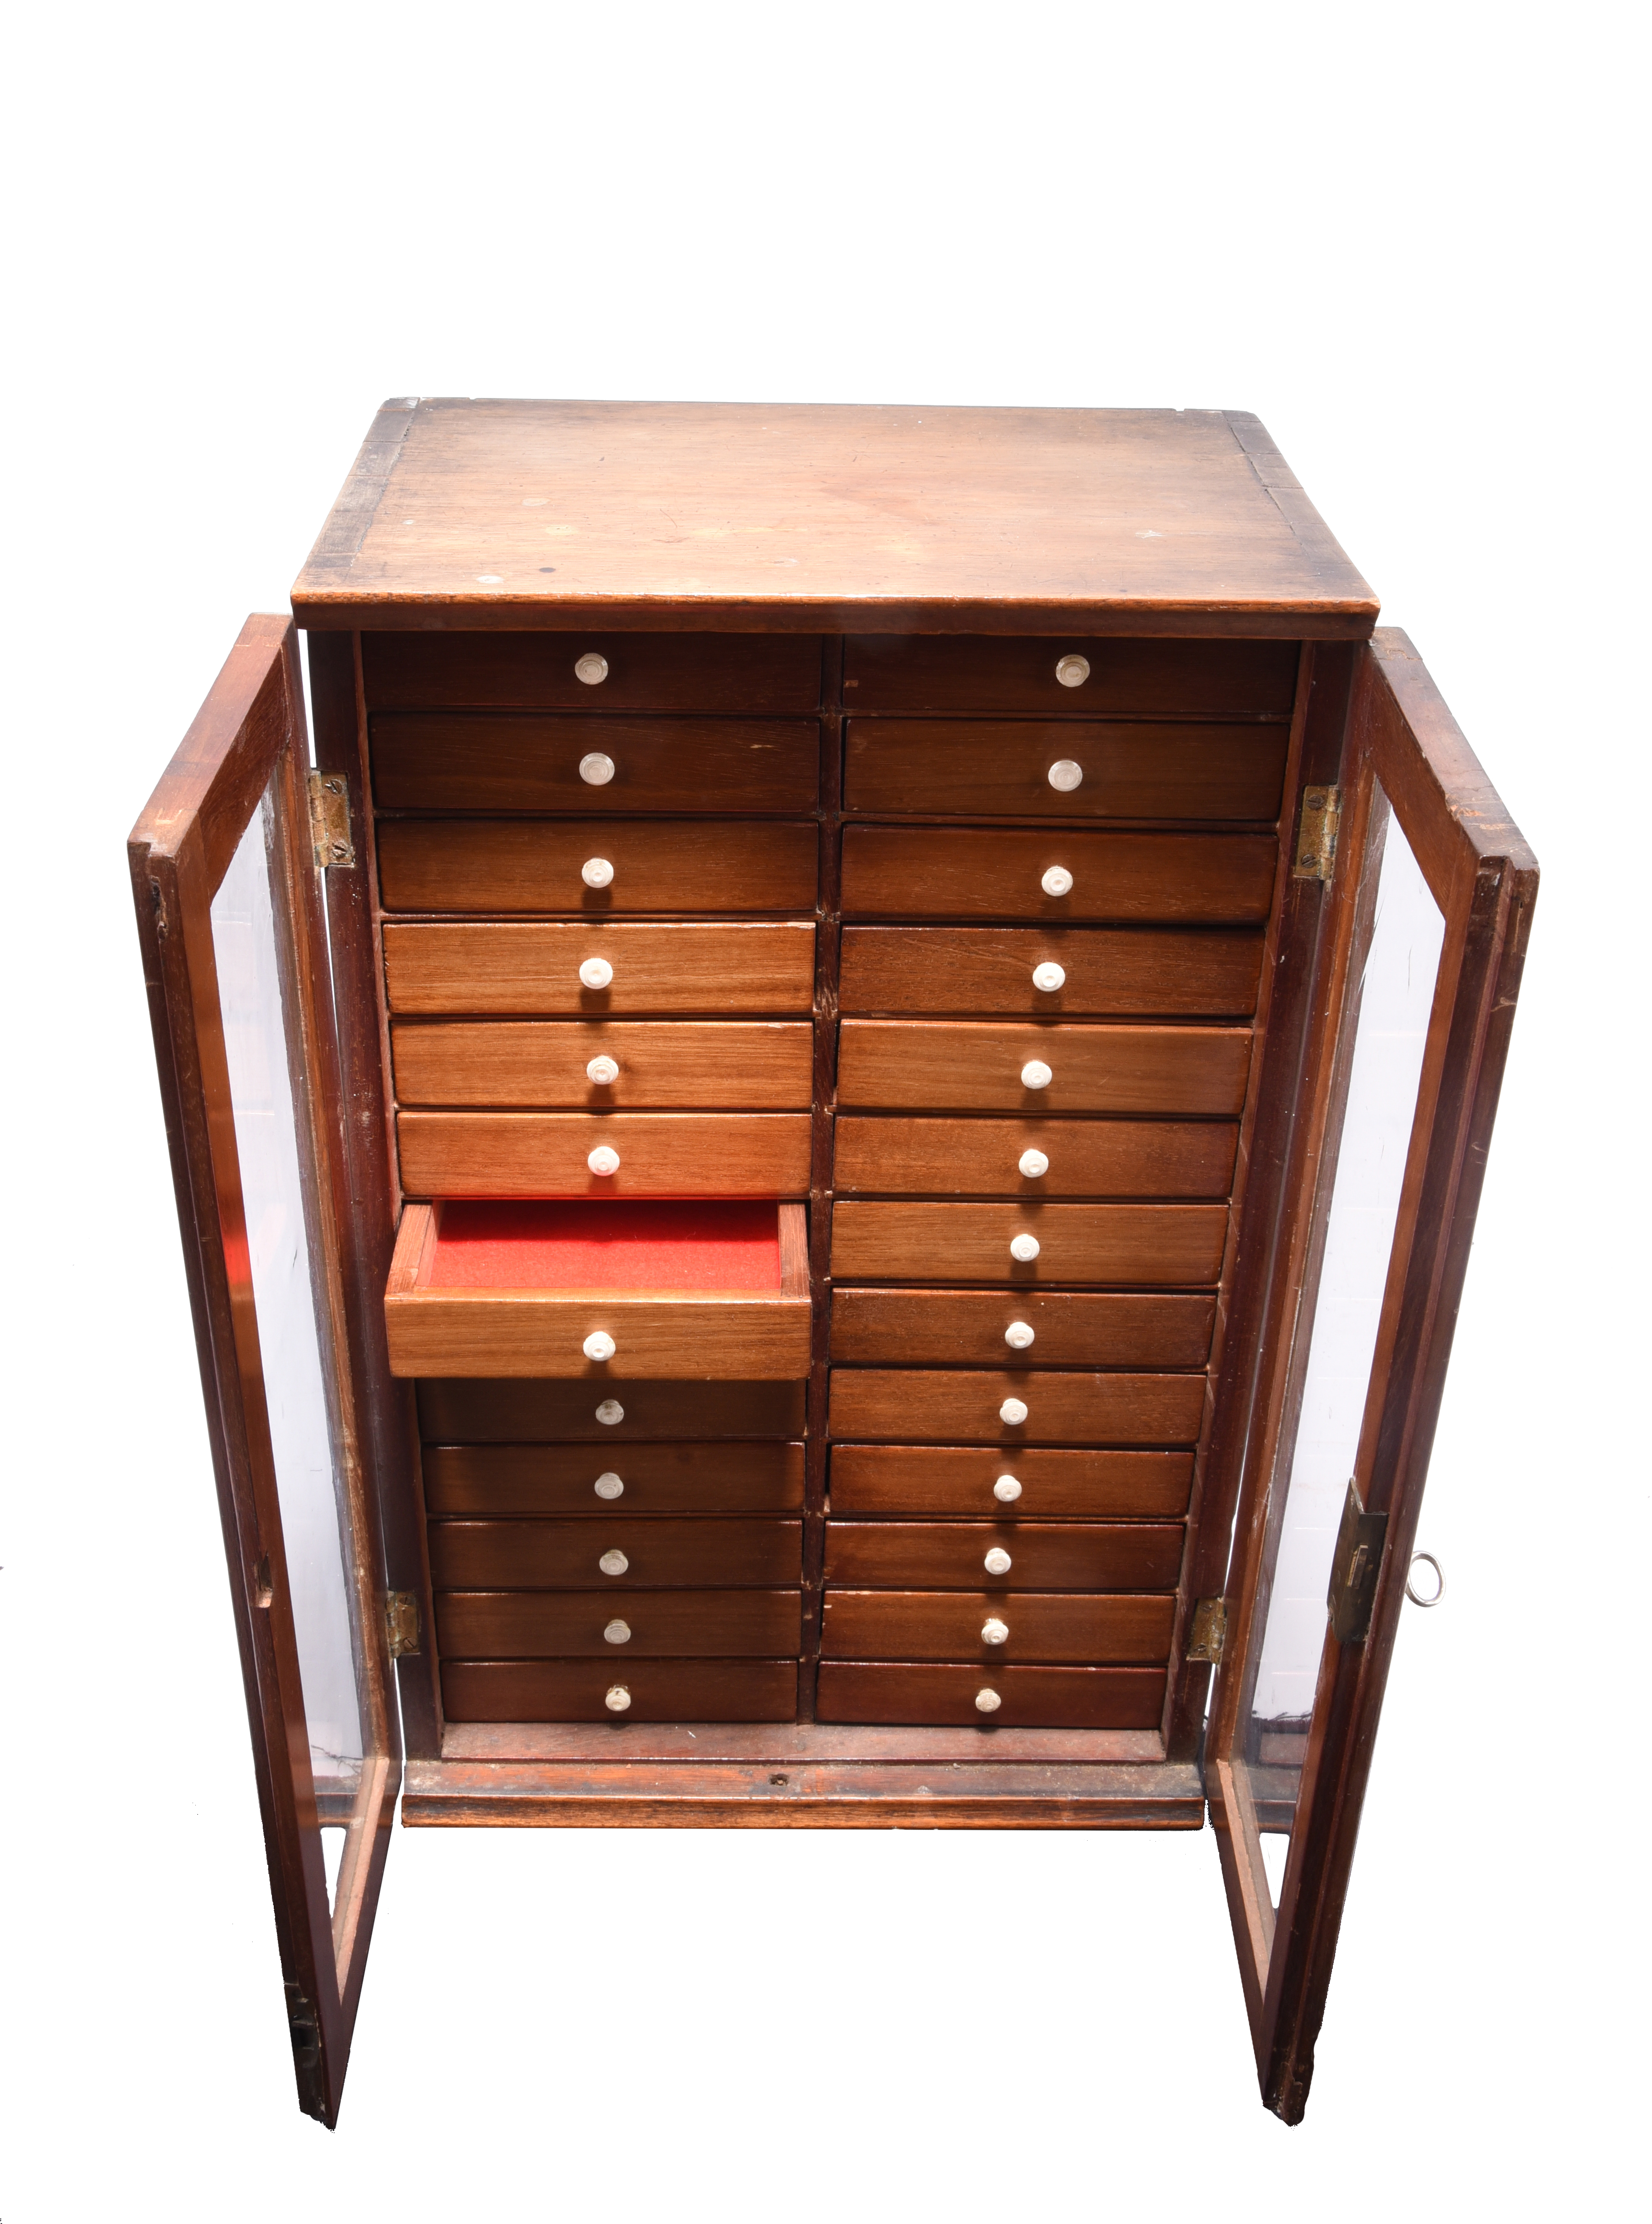 A late 19th/early 20th century collectors cabinet, 26 small drawers in two columns enclosed by - Image 3 of 3